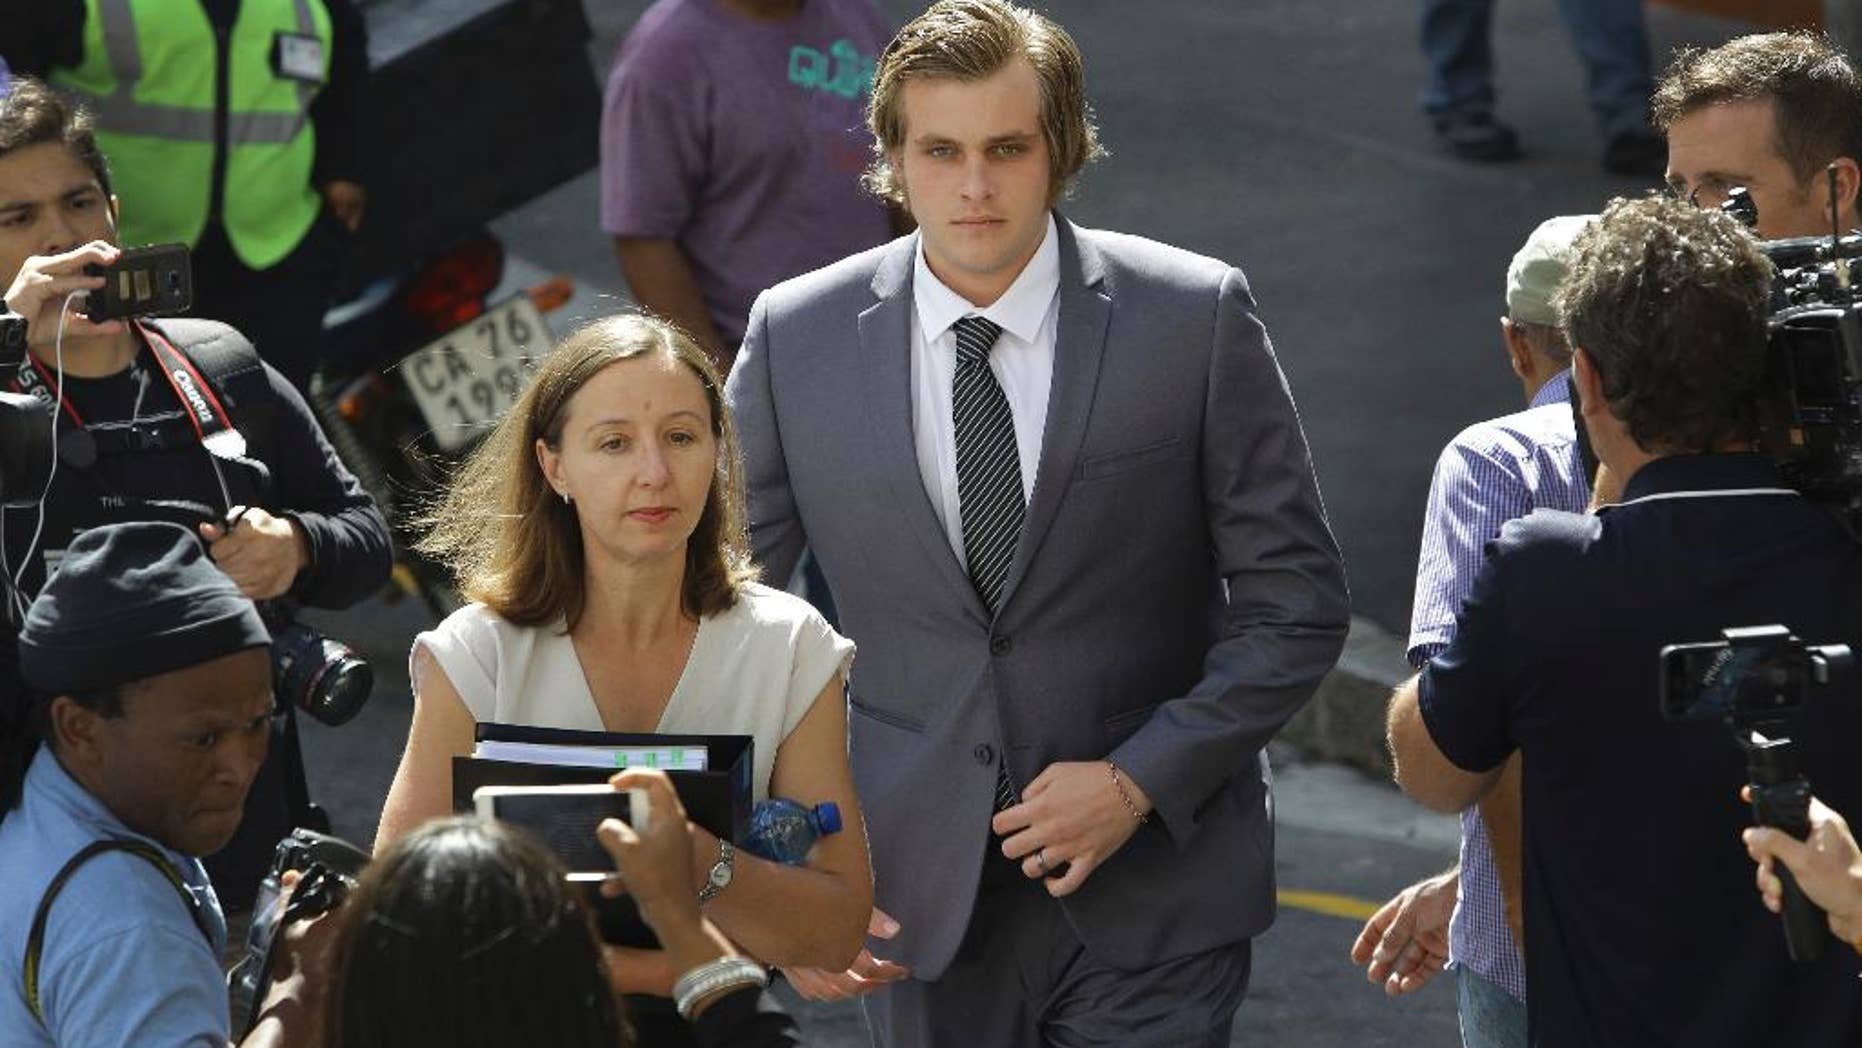 Henri Van Breda, center, accompanied by attorney Lorinda van Niekerk, front, arrives at the supreme court in Cape Town, South Africa, Monday, March 27, 2017. A 22-year-old South African man appeared in court Monday on charges of murdering three members of his family with an axe in their luxury home in Cape Town in January 2015. (AP Photo/STR)